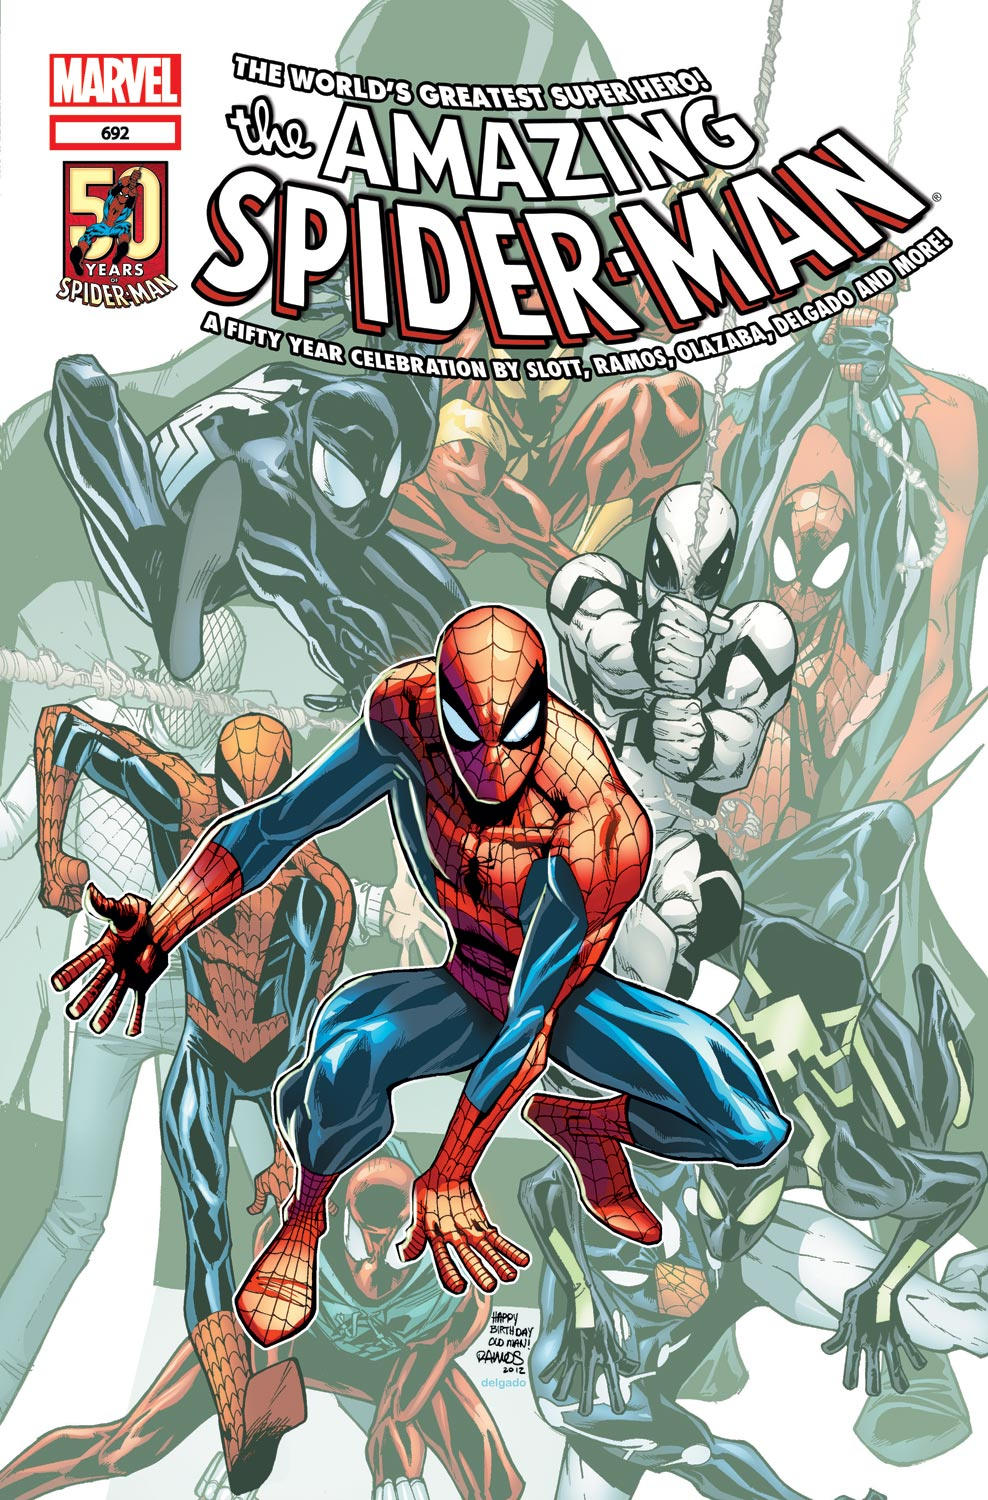 Amazing Spider-Man (1999) #692